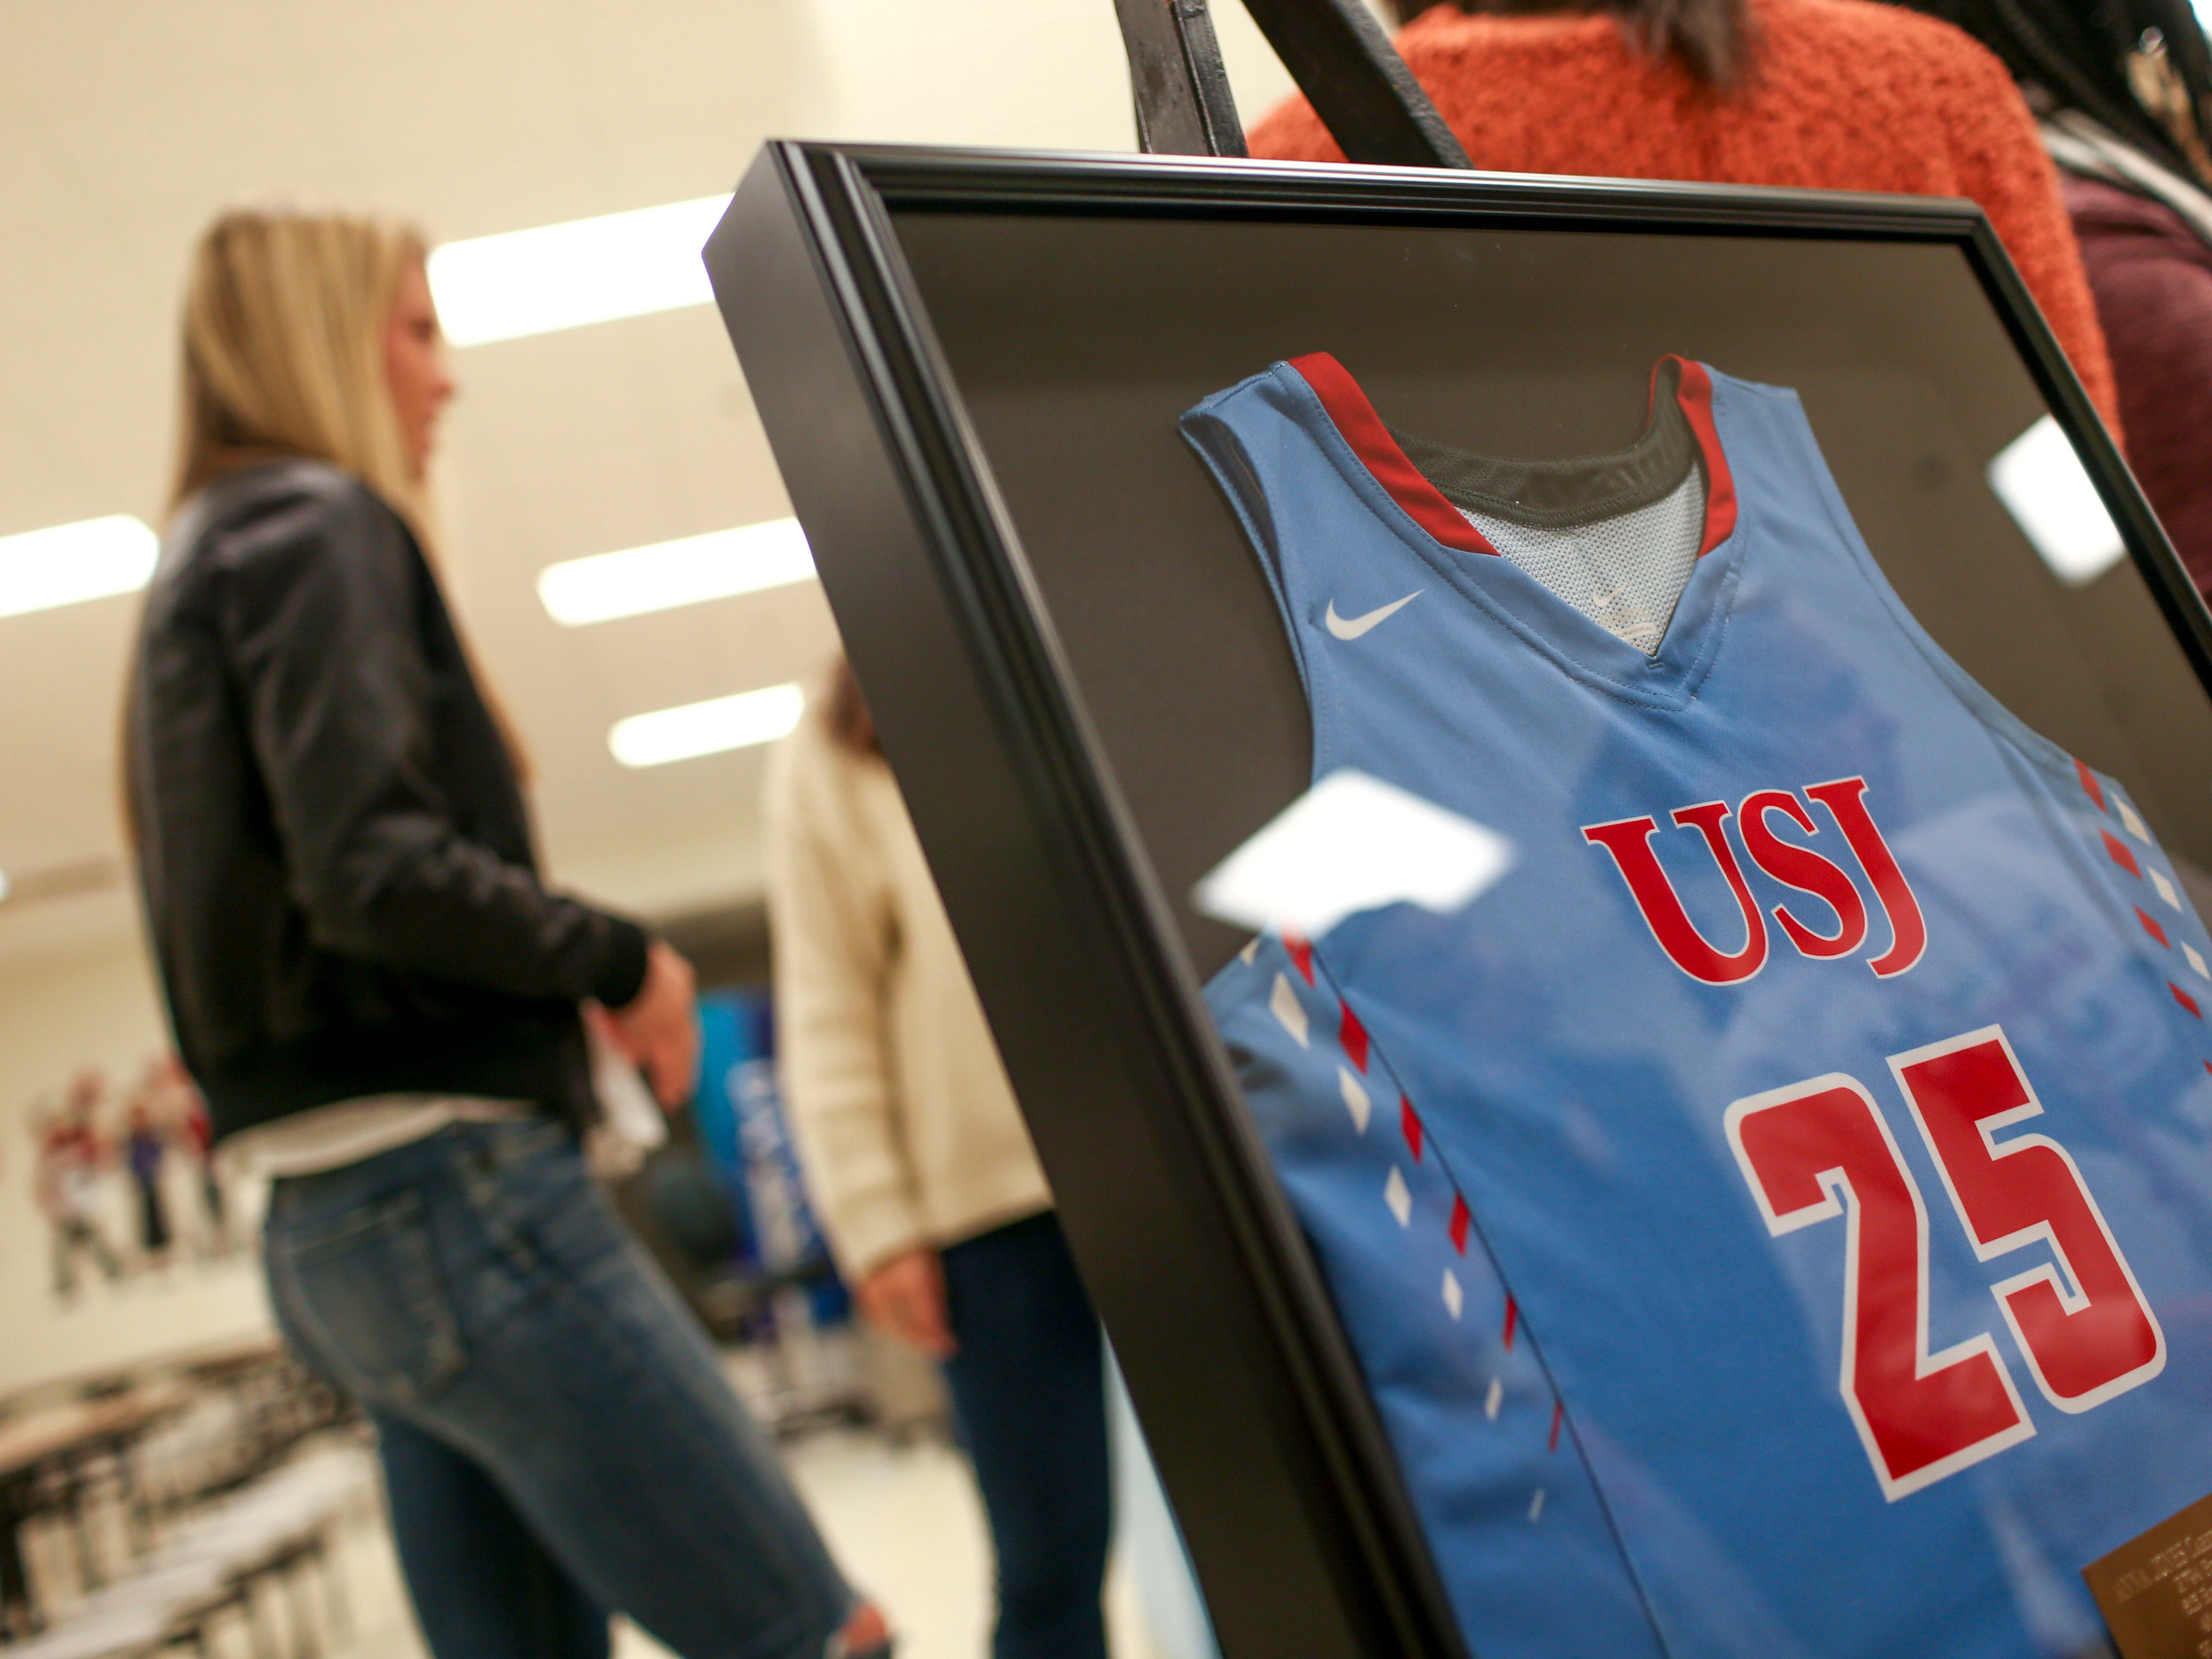 A framed number 25 jersey was presented to Anna Jones during the retirement ceremony of the number at University School of Jackson in Jackson, Tenn., on Friday, Dec. 7, 2018.